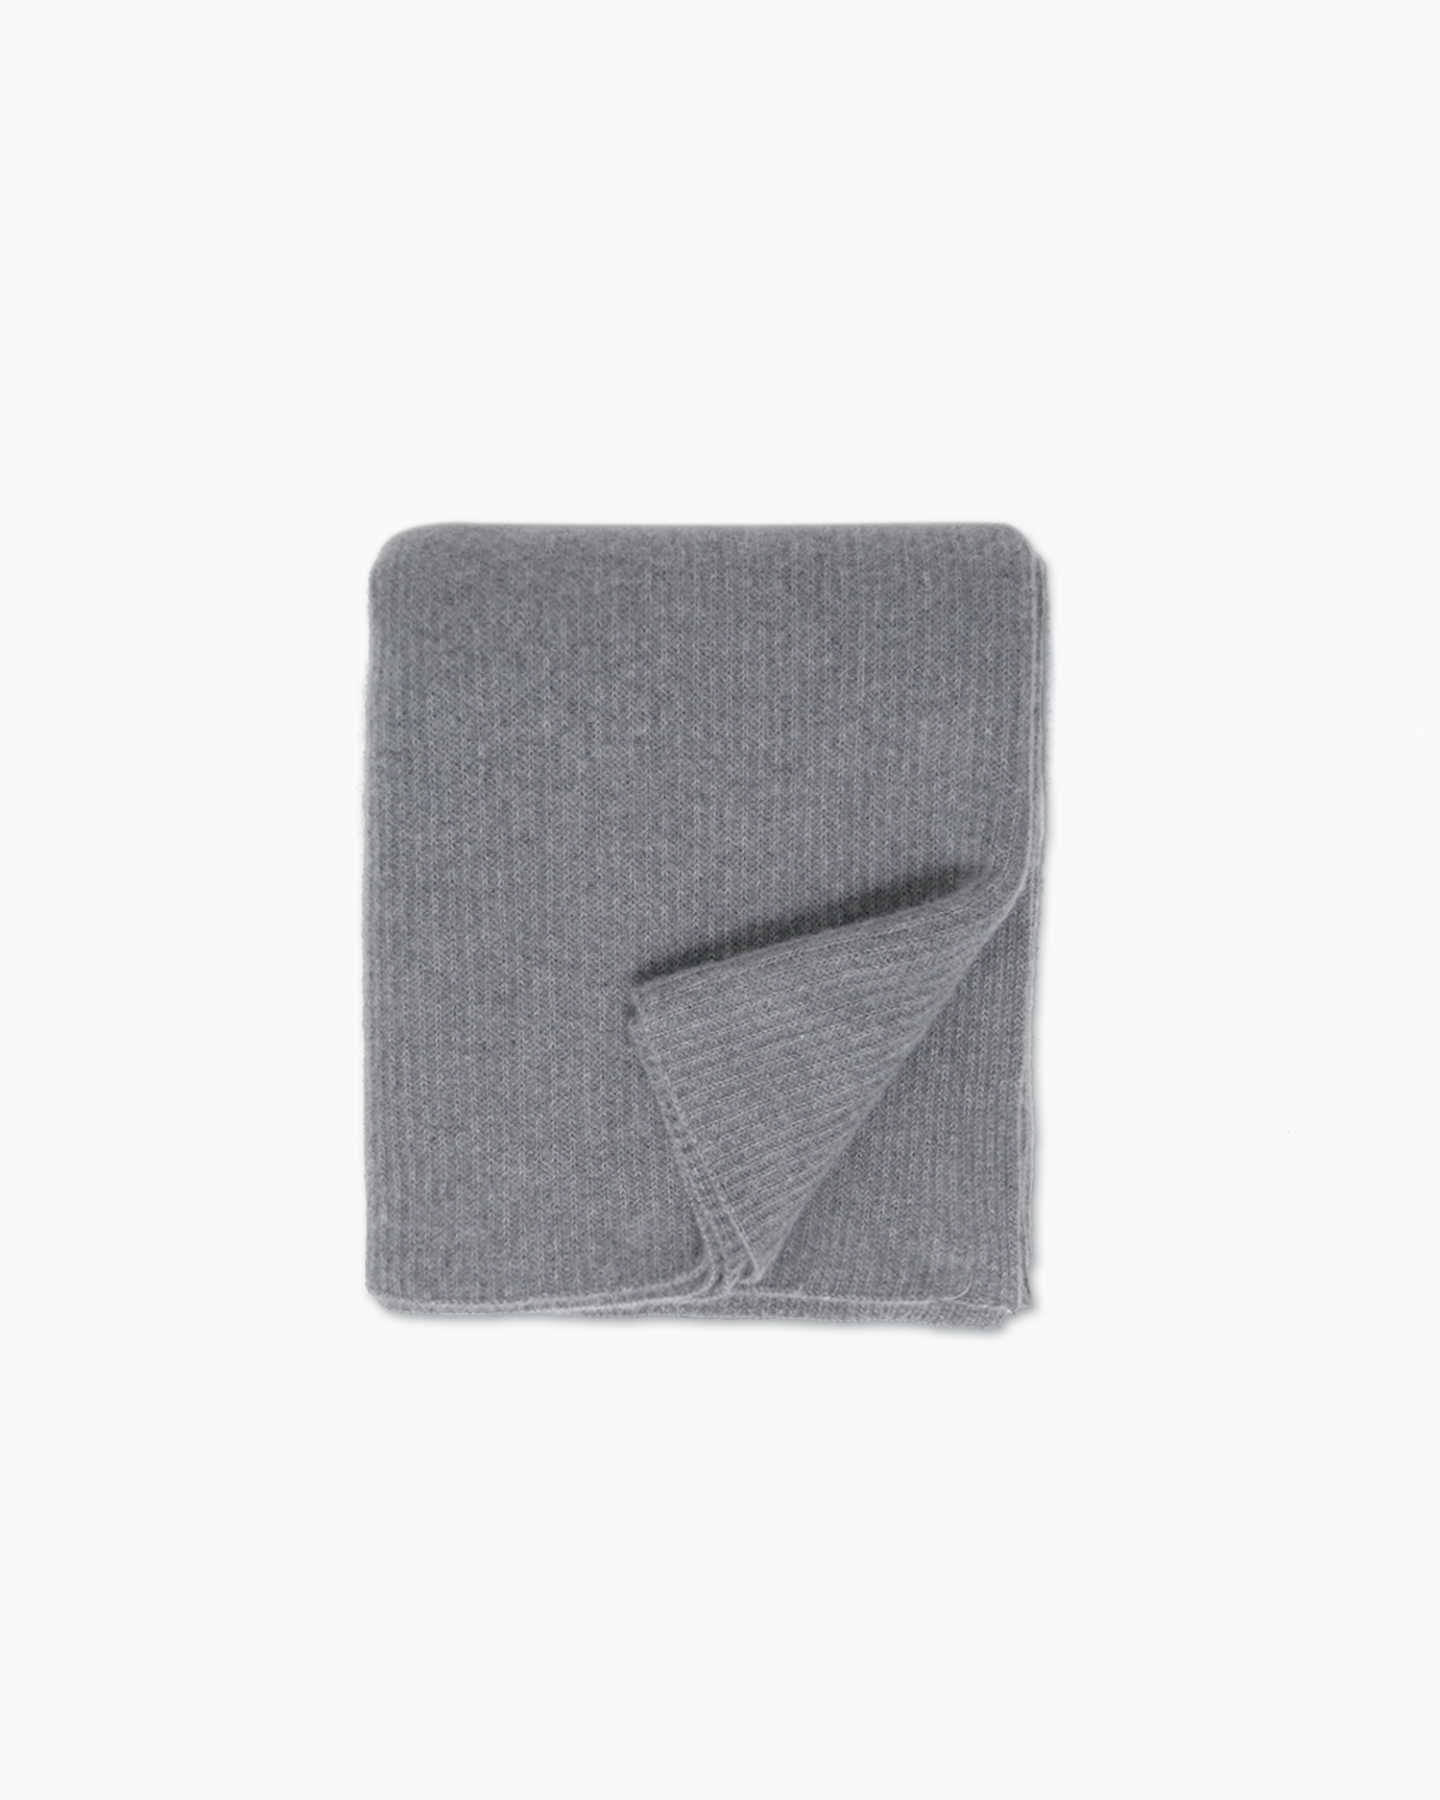 Ribbed Knit Cashmere Throw - Heather Grey